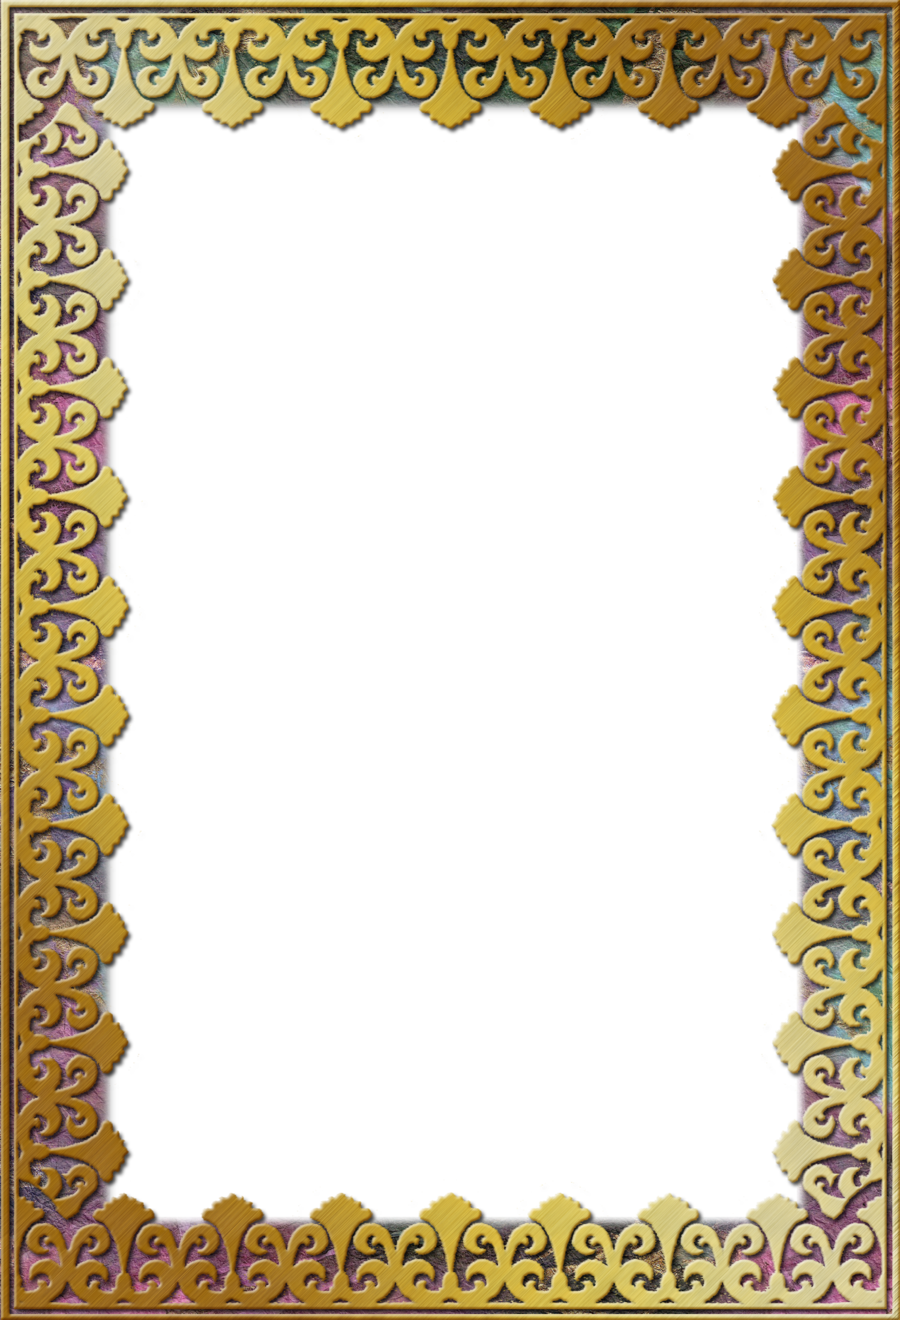 Medieval border png. Fleur frame by ookamikasumi